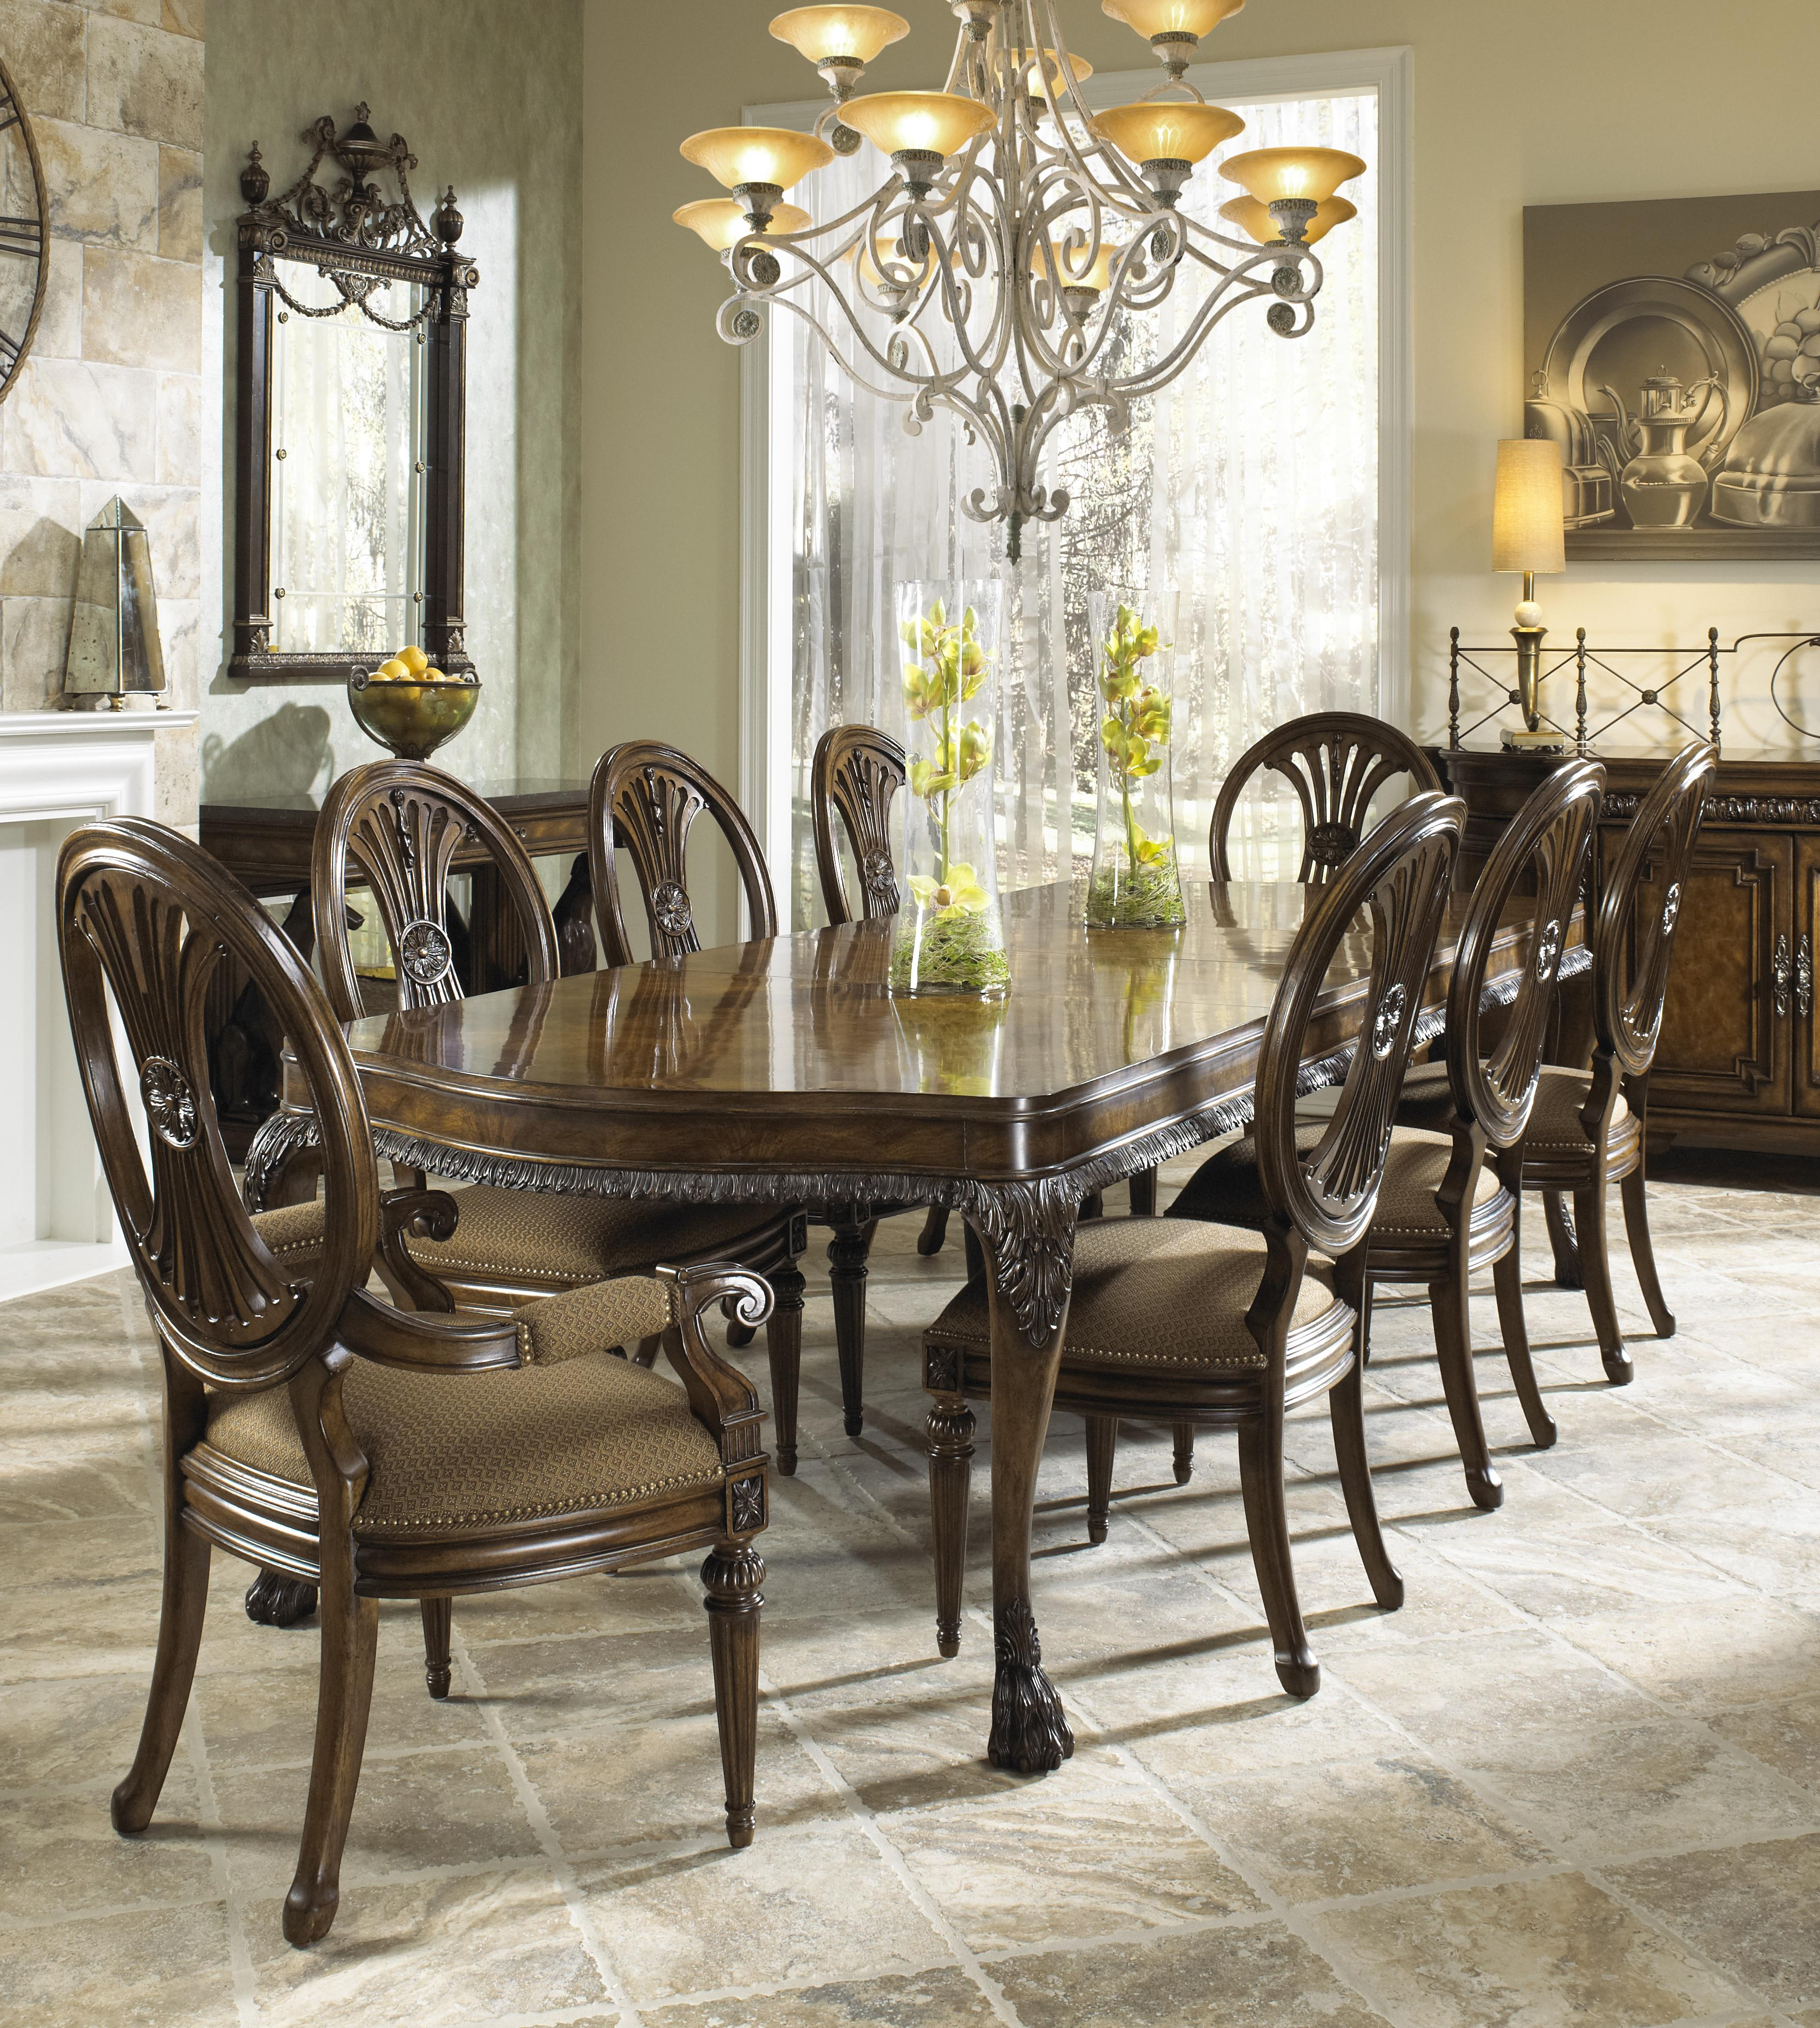 Ordinaire Nine Piece Formal Dining Set With Two Arm Chairs And Six Side Chairs